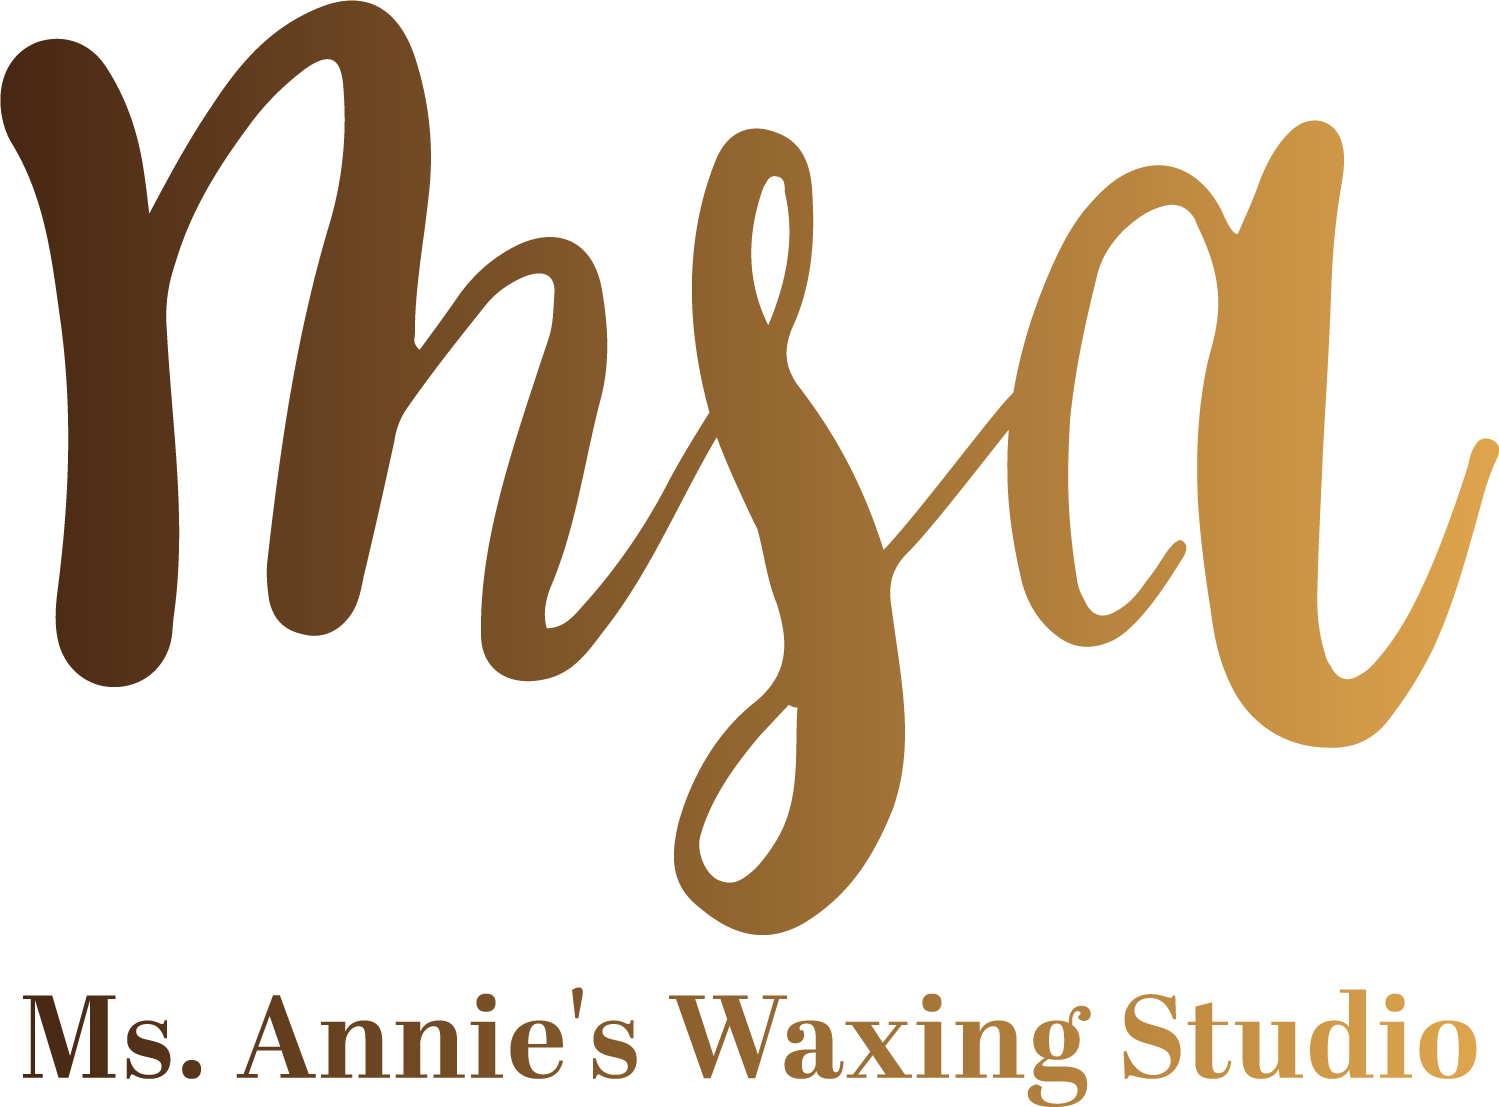 Ms. Annie's Waxing Studio